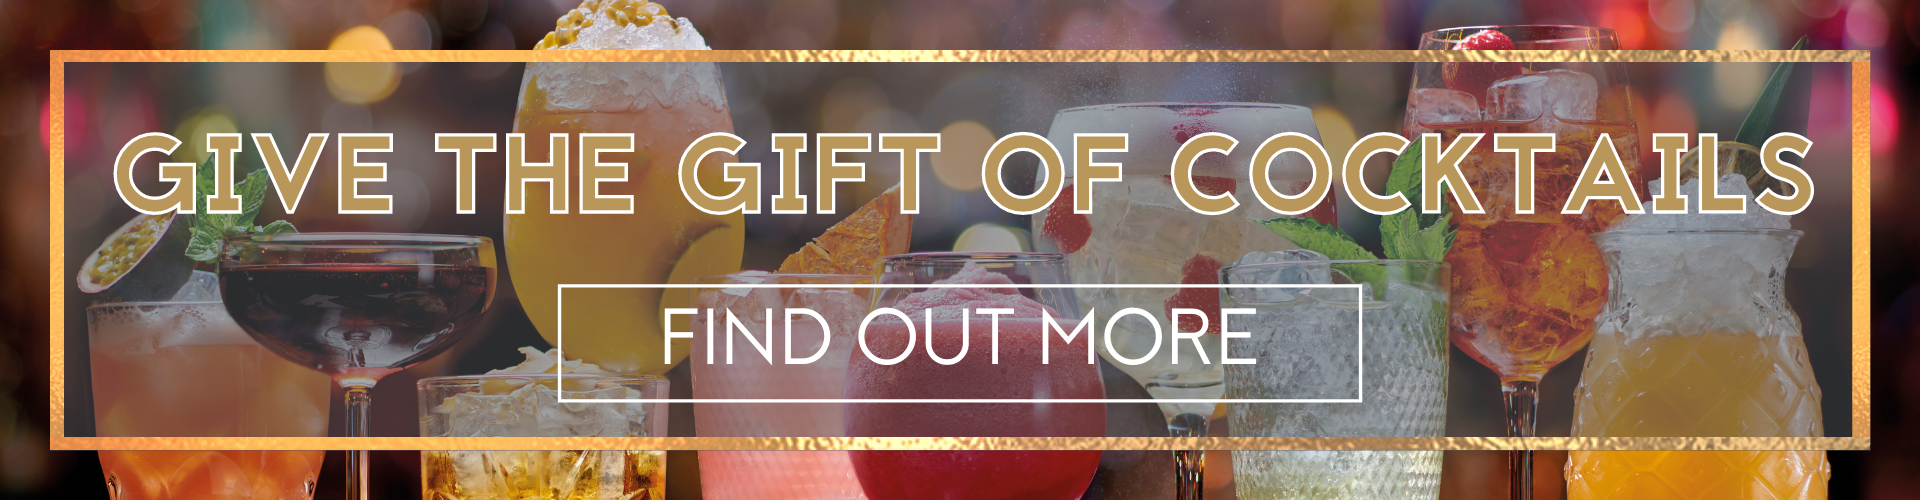 Give the Gift of Cocktails